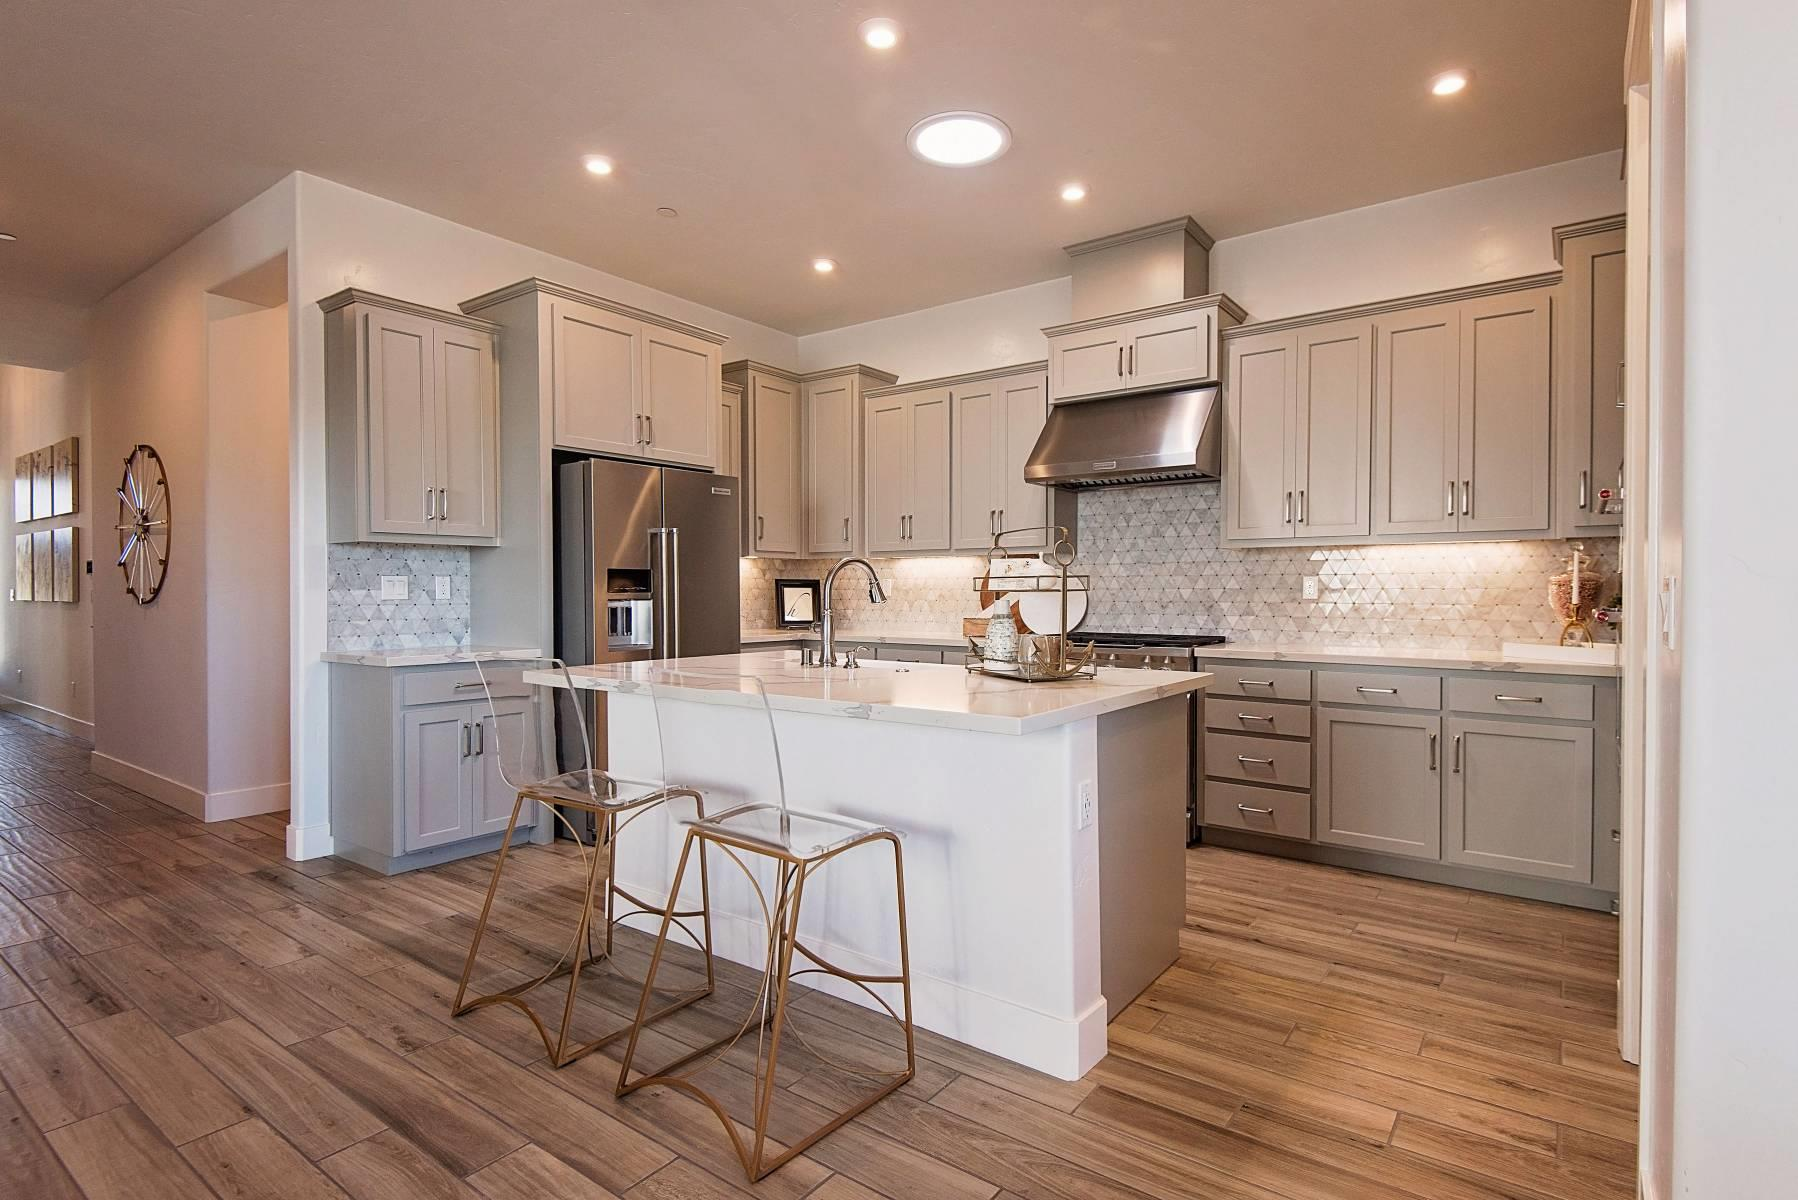 Kitchen featured in the Clover By Elliott Homes in Sacramento, CA